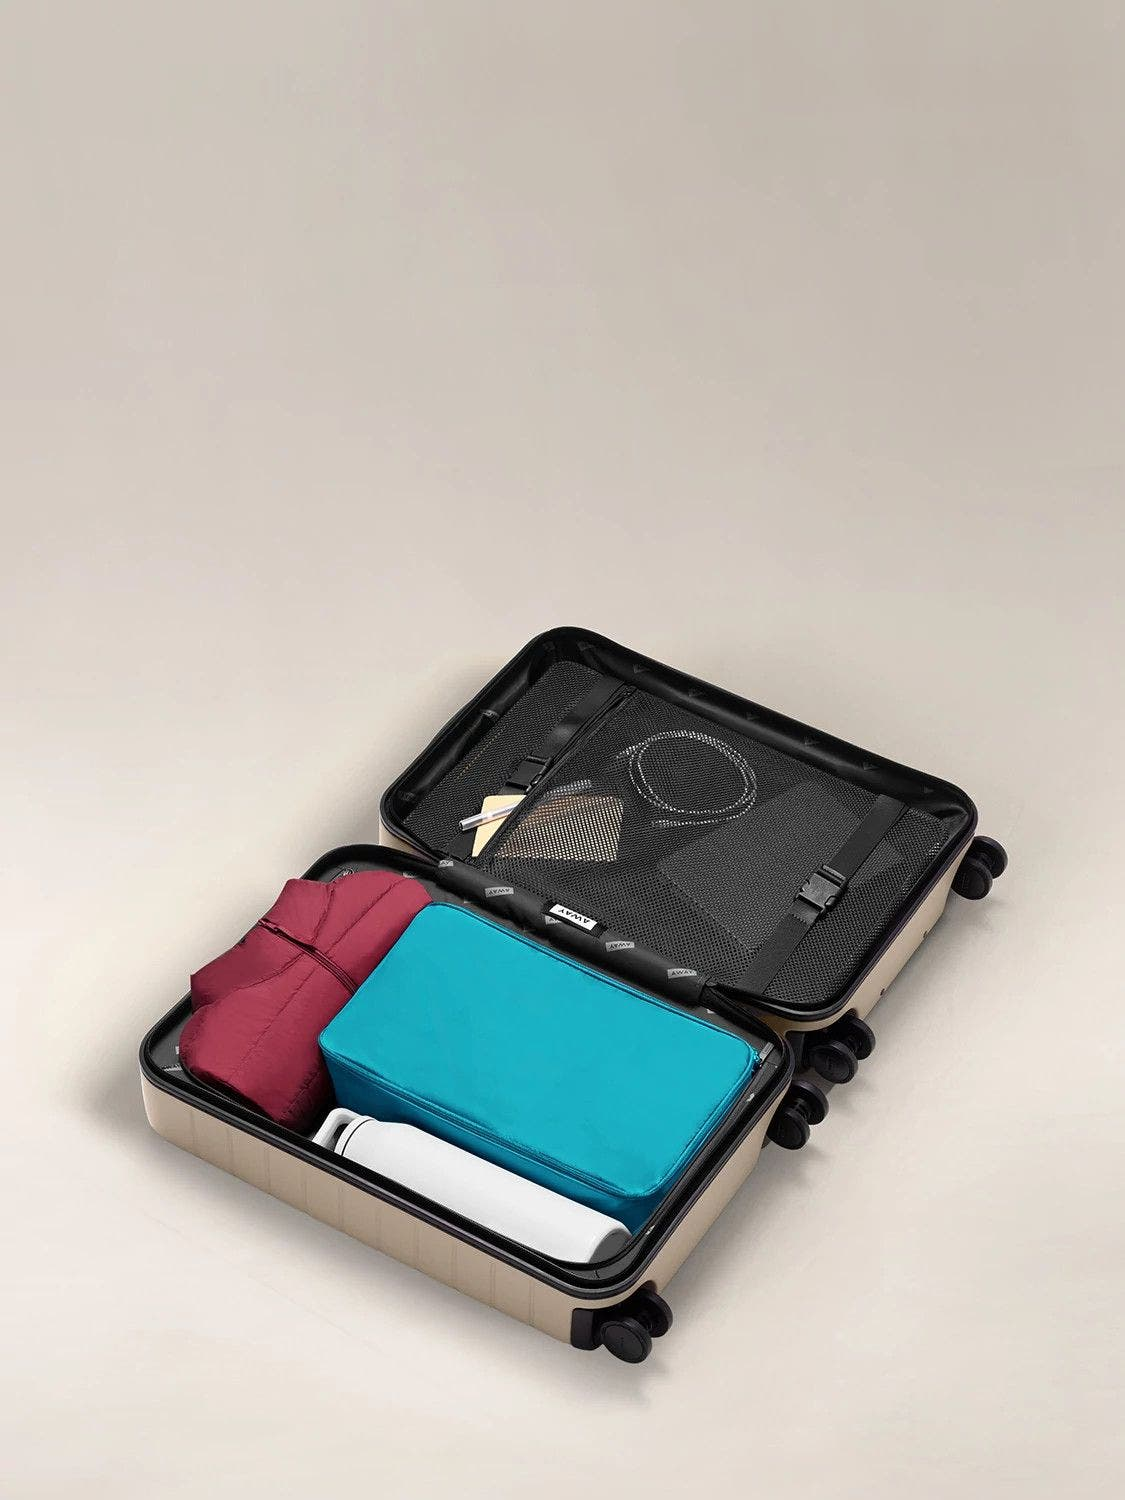 A large shoe cube in bright teal packed in an open carry-on suitcase.